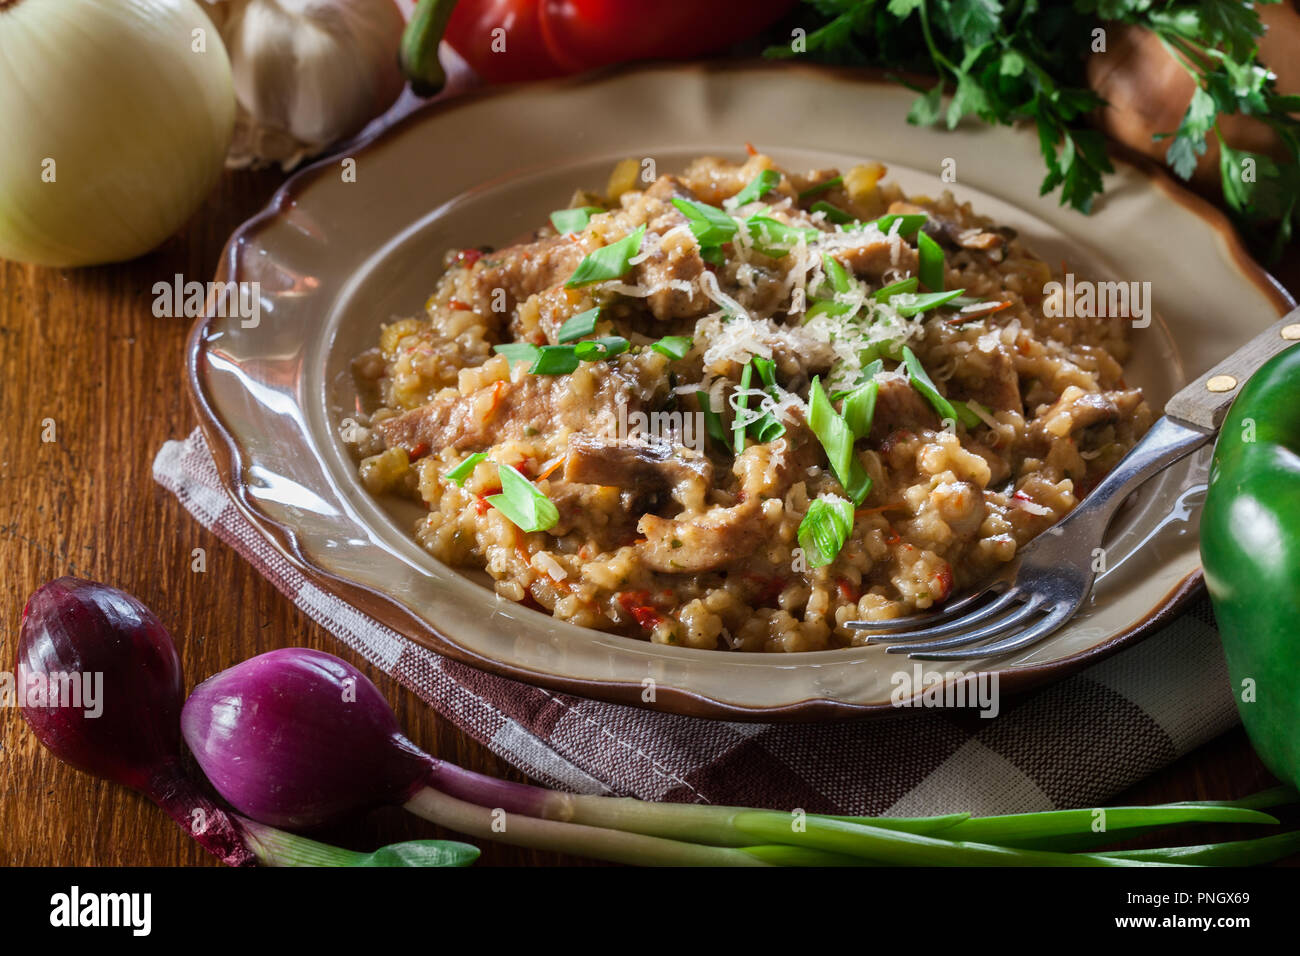 Risotto with champignon mushrooms, pork and parmesan. Italian cuisine - Stock Image